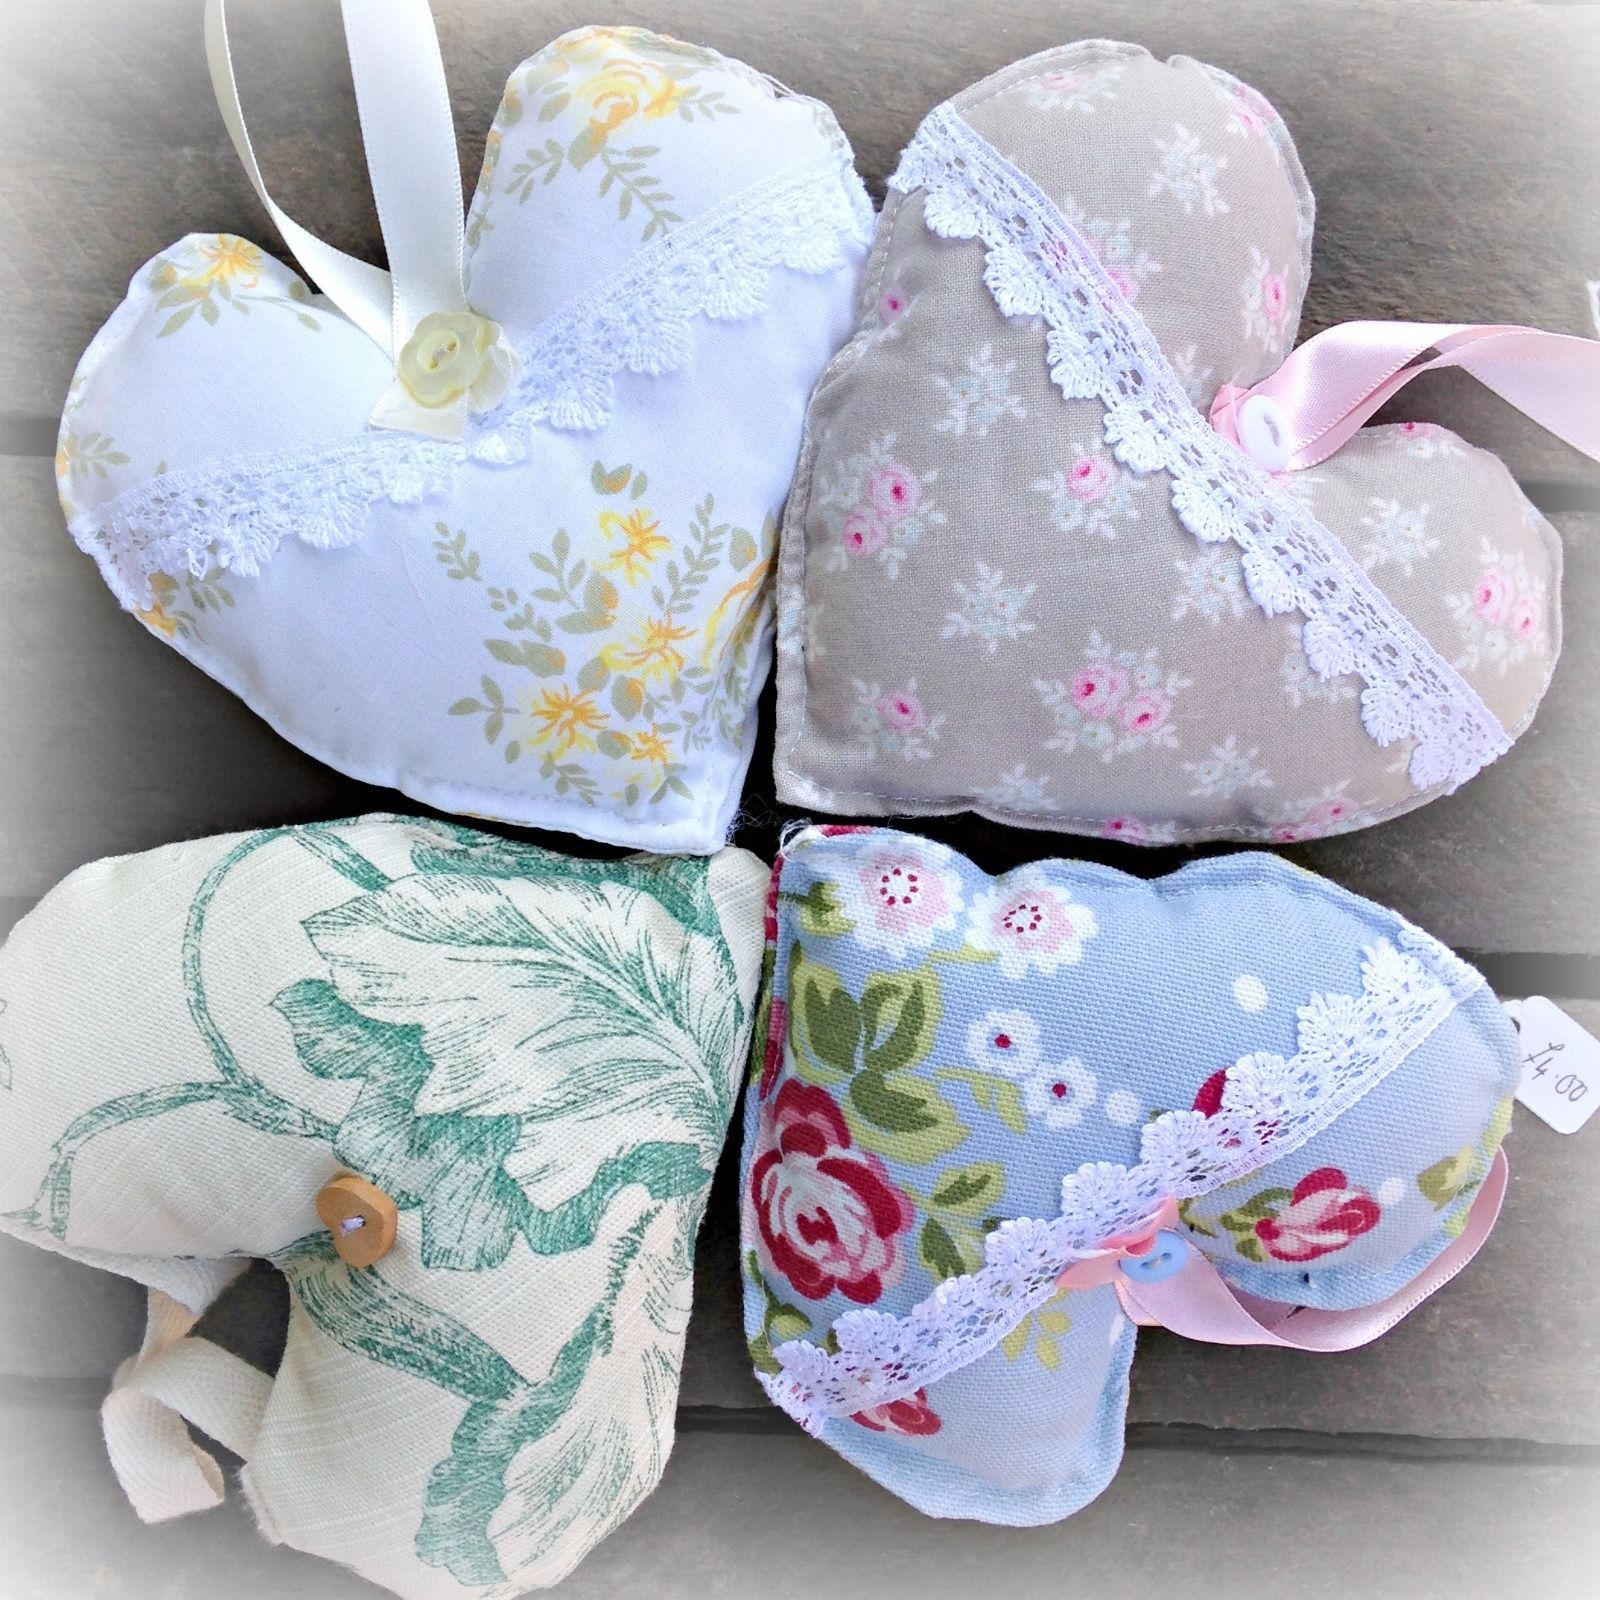 Swell Handmade Fabric Hanging Hearts Set Of 4 Vintage Wedding Home Interior And Landscaping Ponolsignezvosmurscom